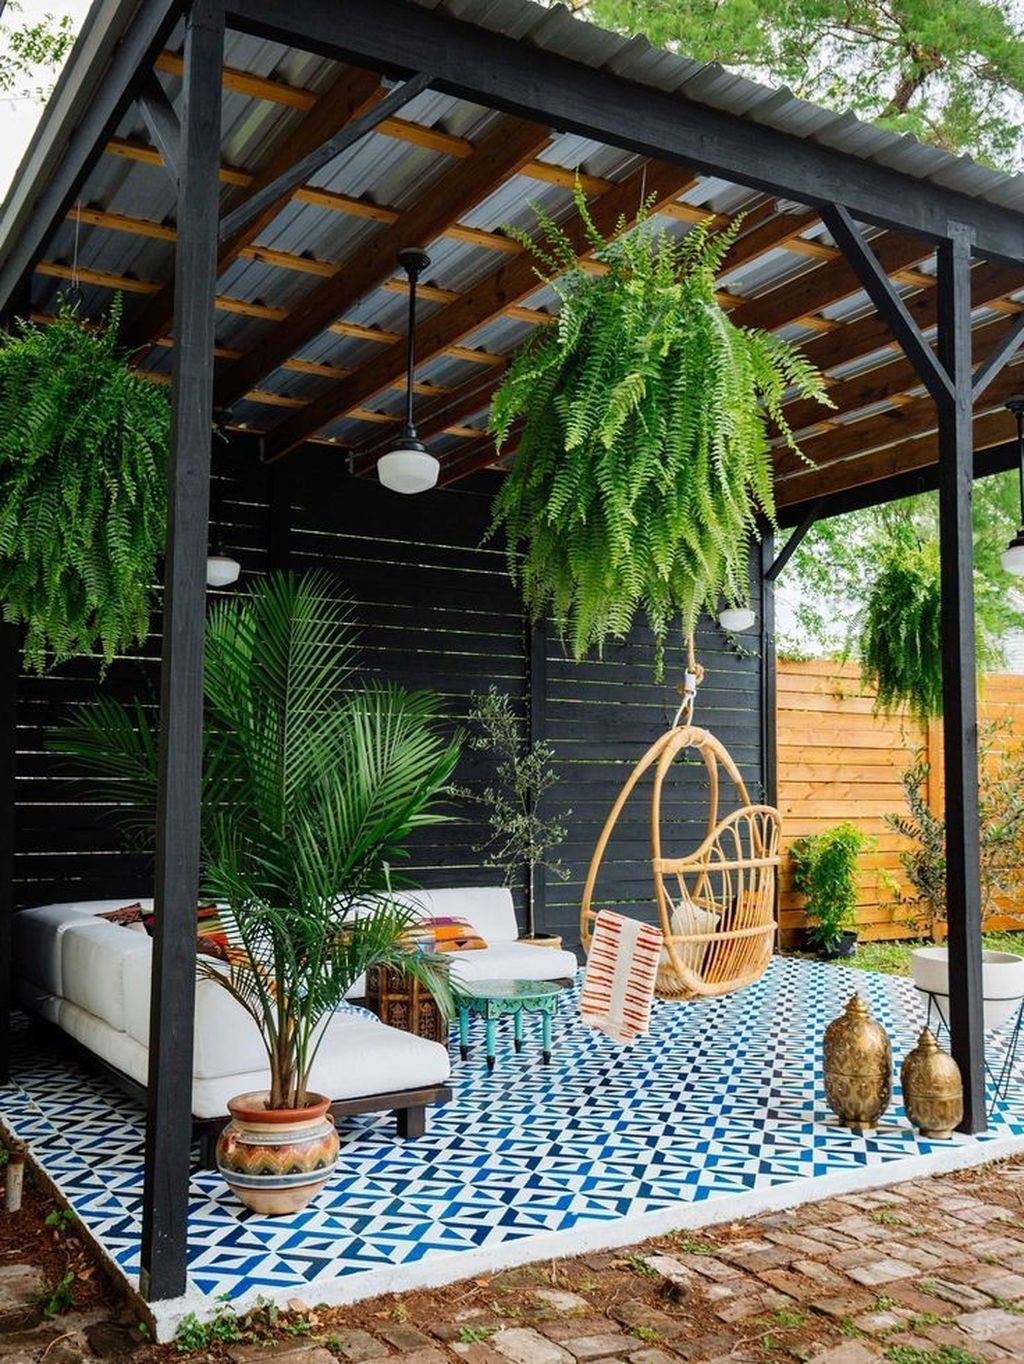 50 Amazing Decorative Outdoor Rugs Patio Ideas #outdoorrugs